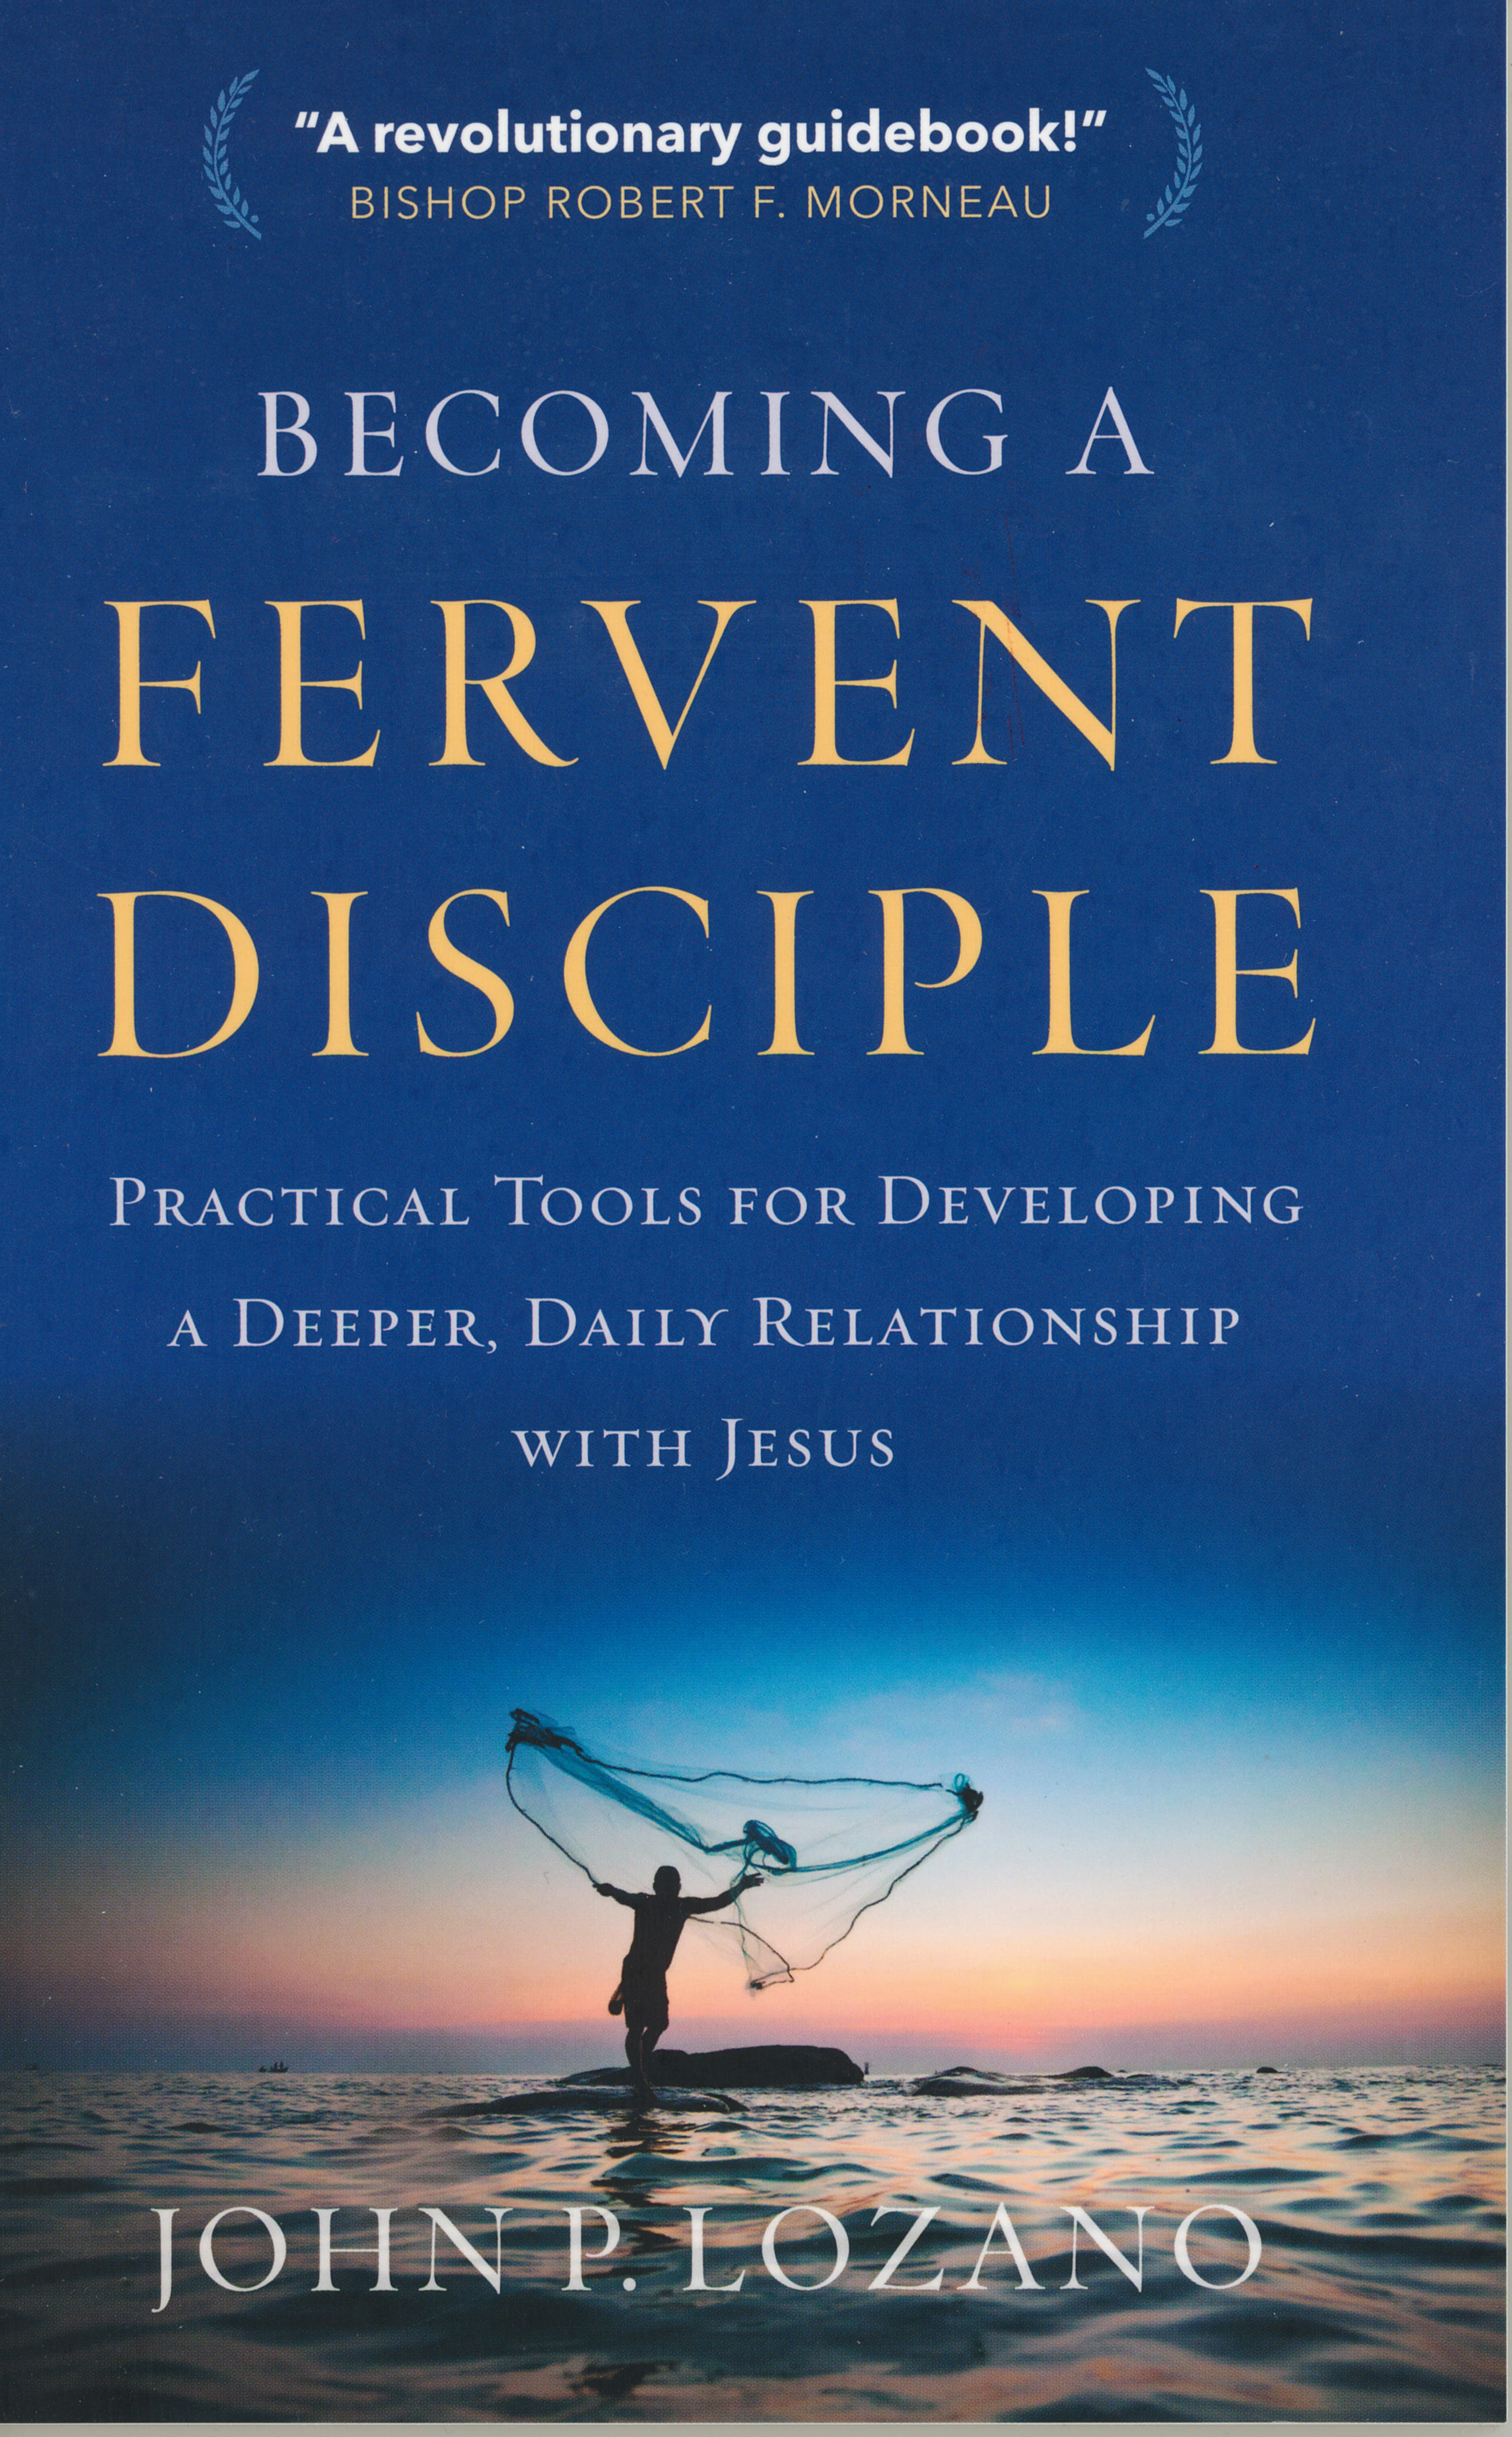 Becoming A Fervent Disciple by John P. Lozano 108-9781627853415